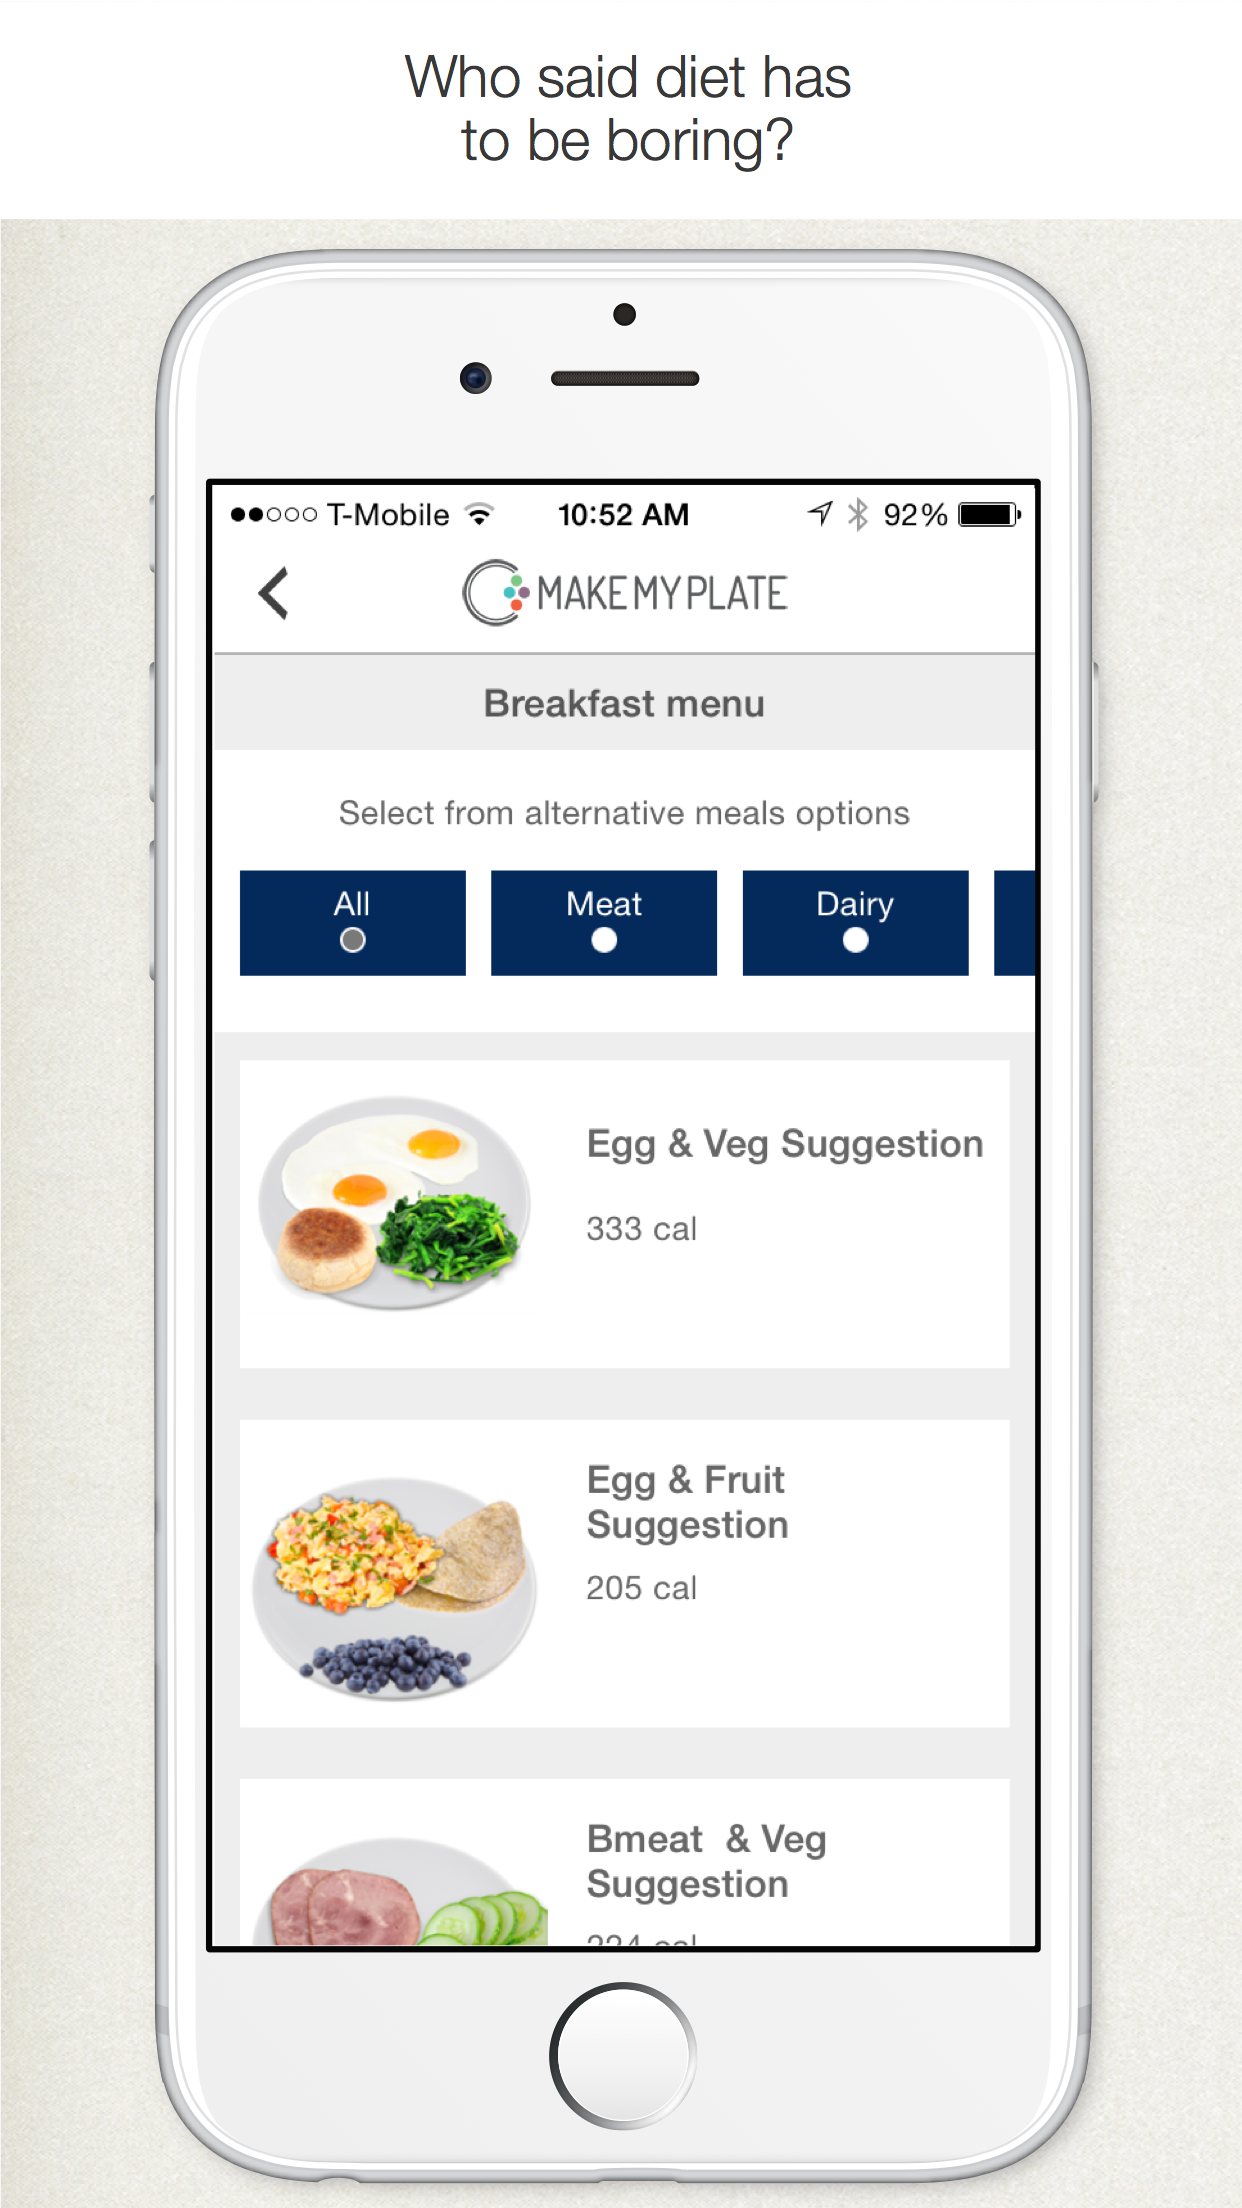 MakeMyPlate - Weight loss & healthy diet meal plan Screenshot